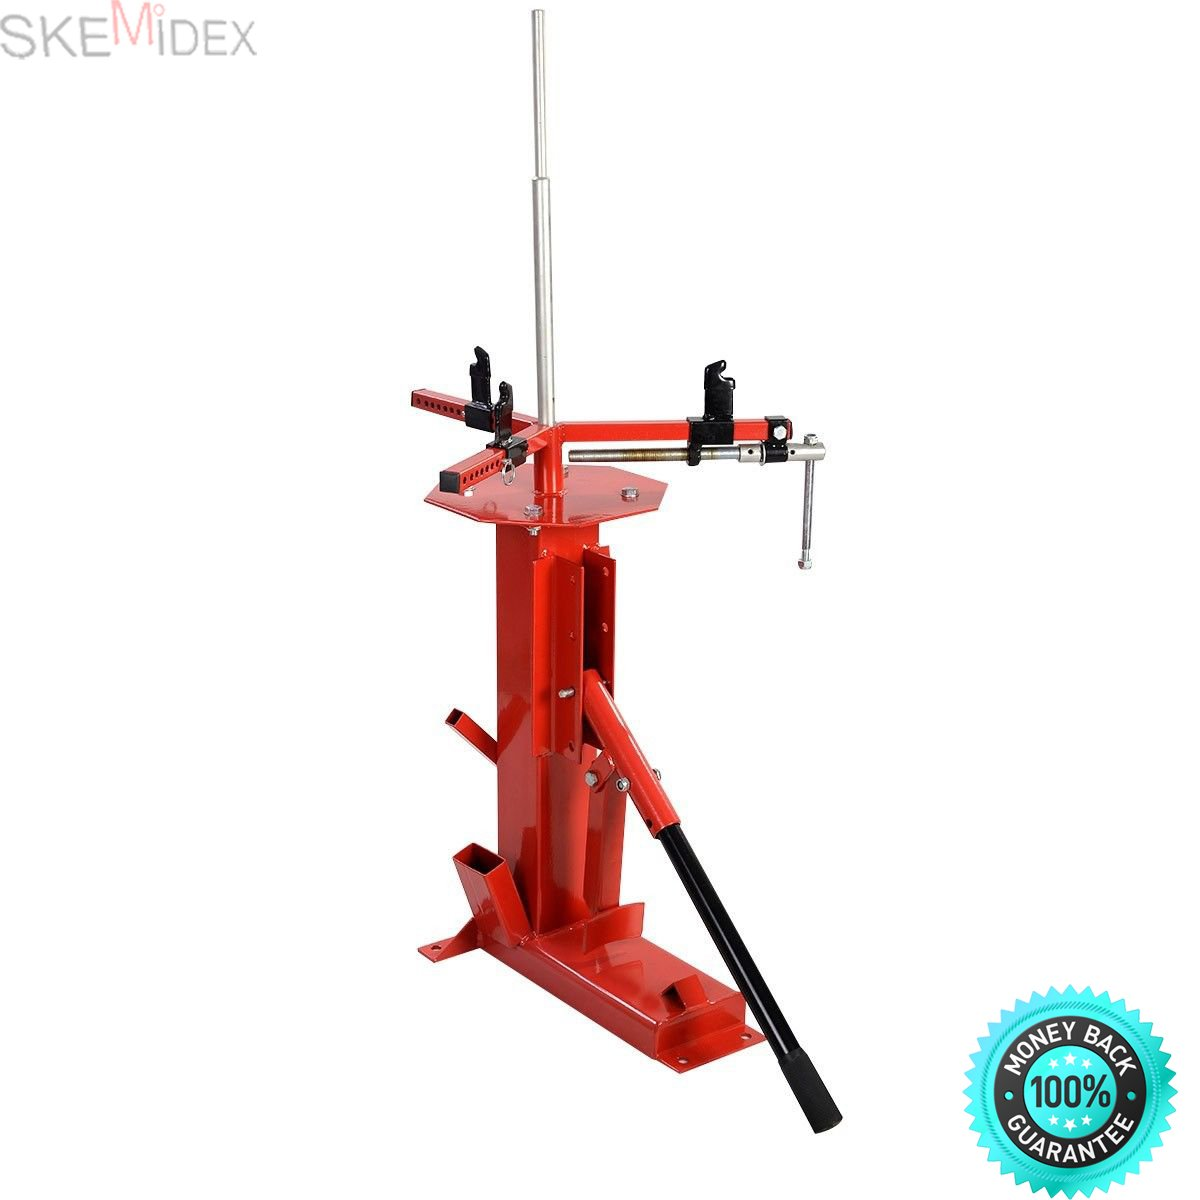 SKEMIDEX---4'' To 16.5'' Multi Tire Changer For Motorcycle GoCart Trailer Bike ATV Truck Product Weight: About 70 Lbs Package Include: Tire Changer Small Post Large Post 1 User's Manual